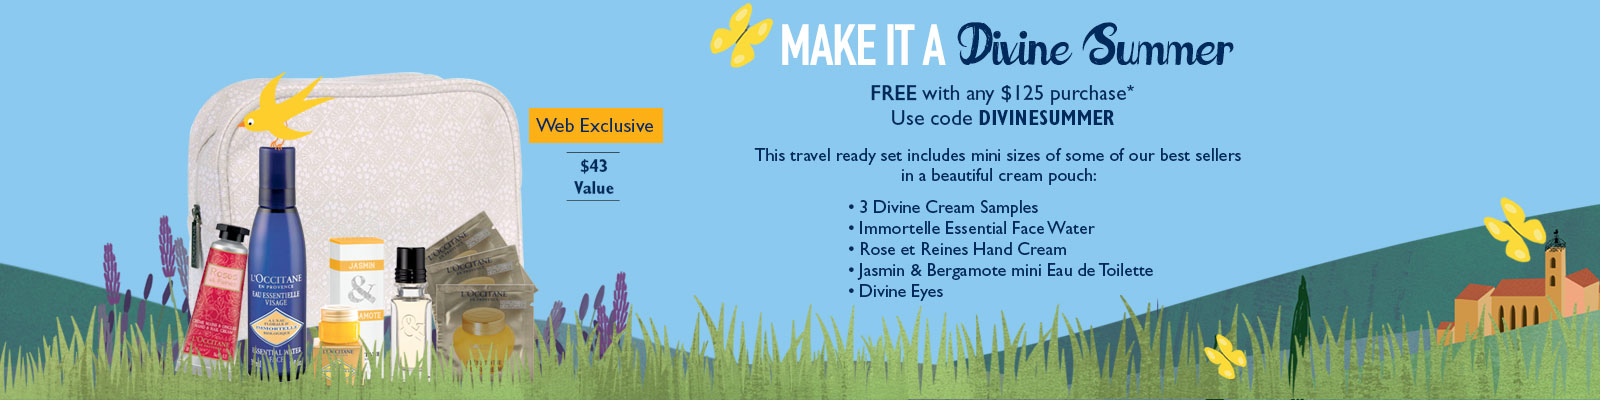 Make it a Divine Summer.  Free with any $125 purchase.  Use code DIVINESUMMER